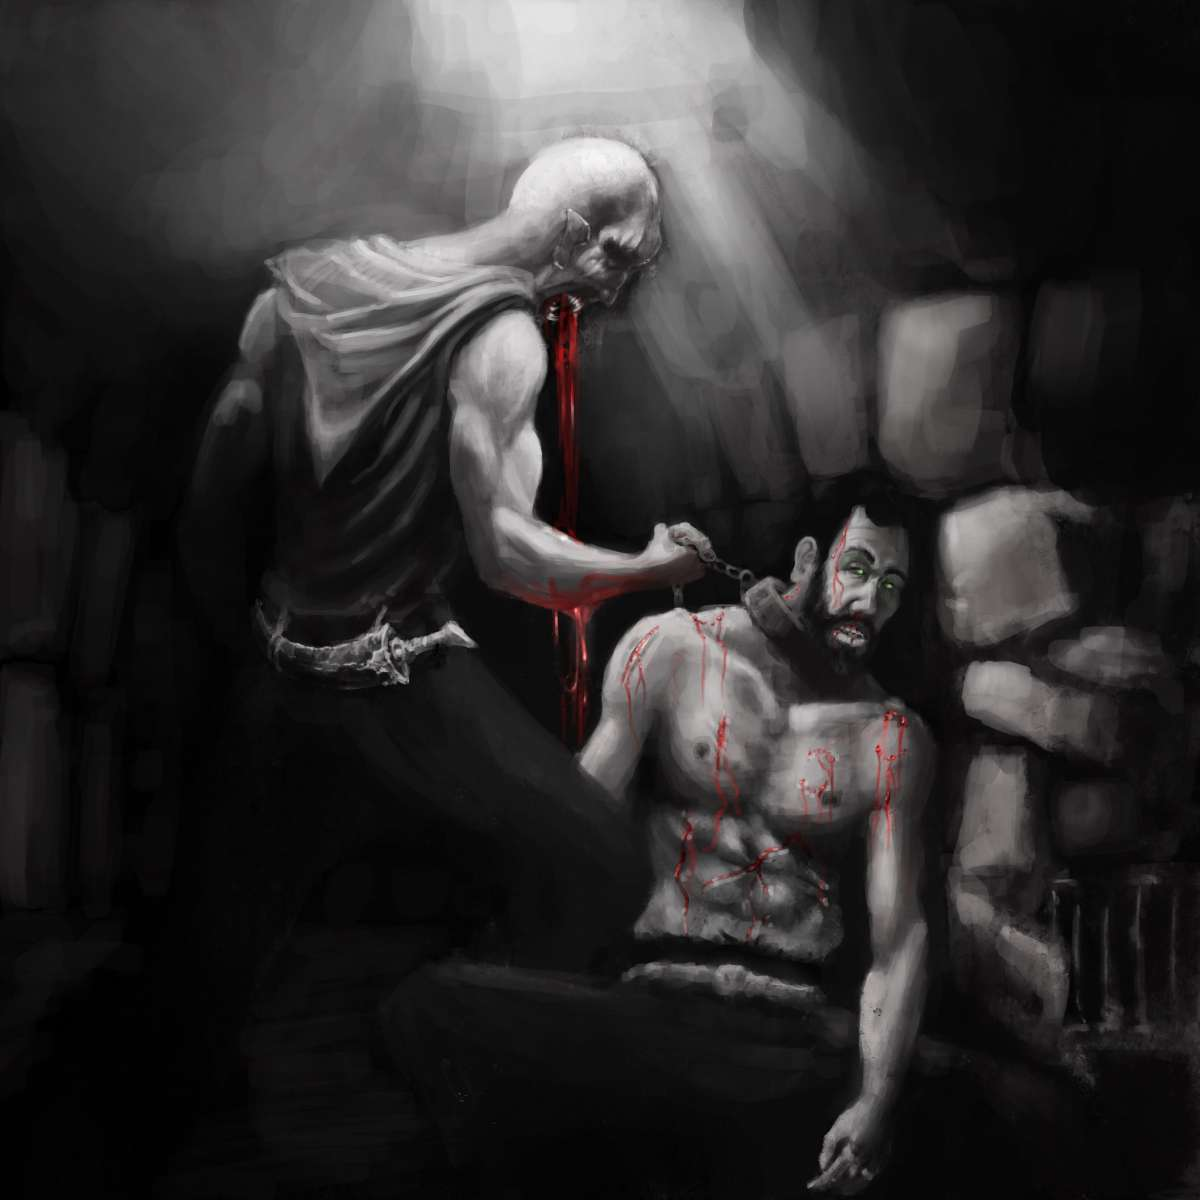 Michael Stauner - Krieg der Vampire: Falbyr in the dungeon (illustration of book scene)